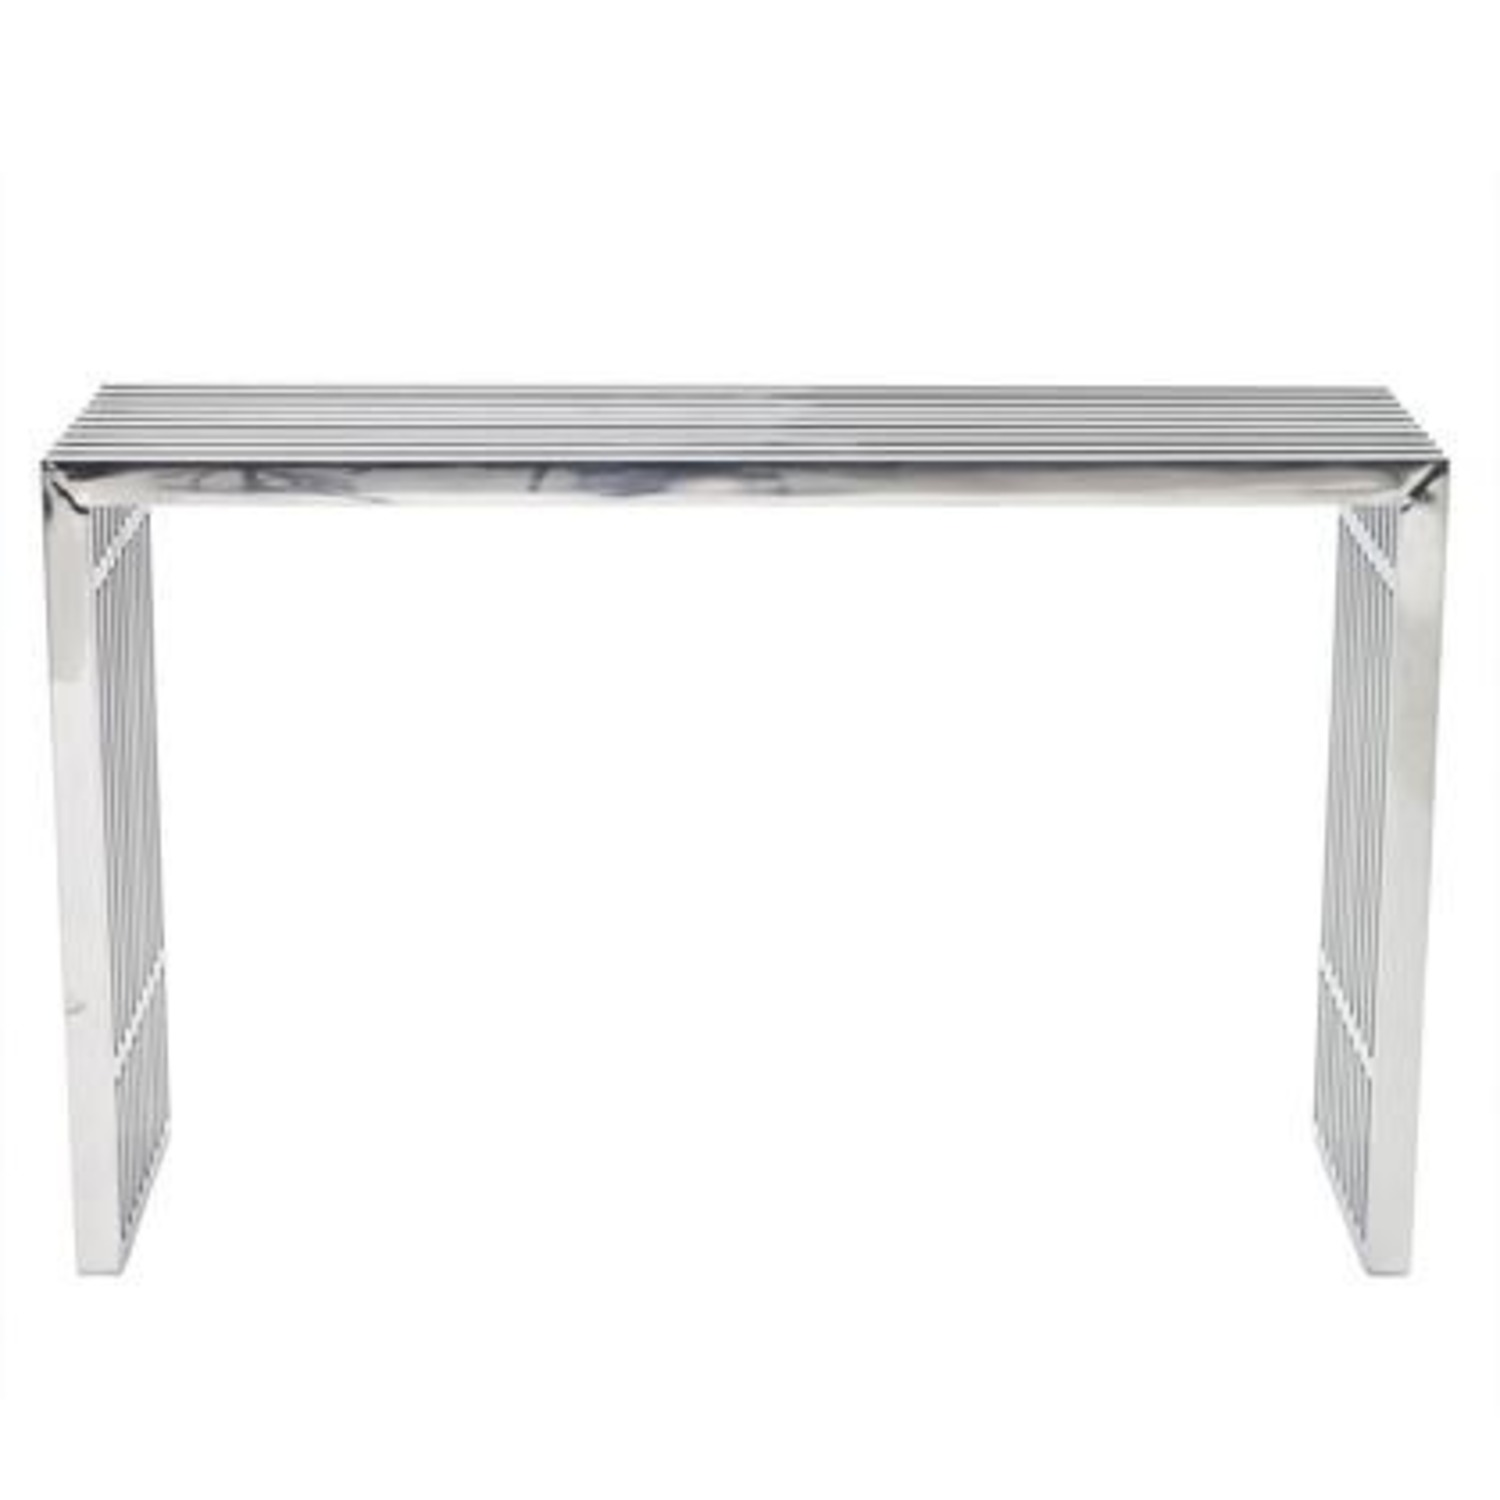 Modern Console Table In Silver Tubular Steel - image-0